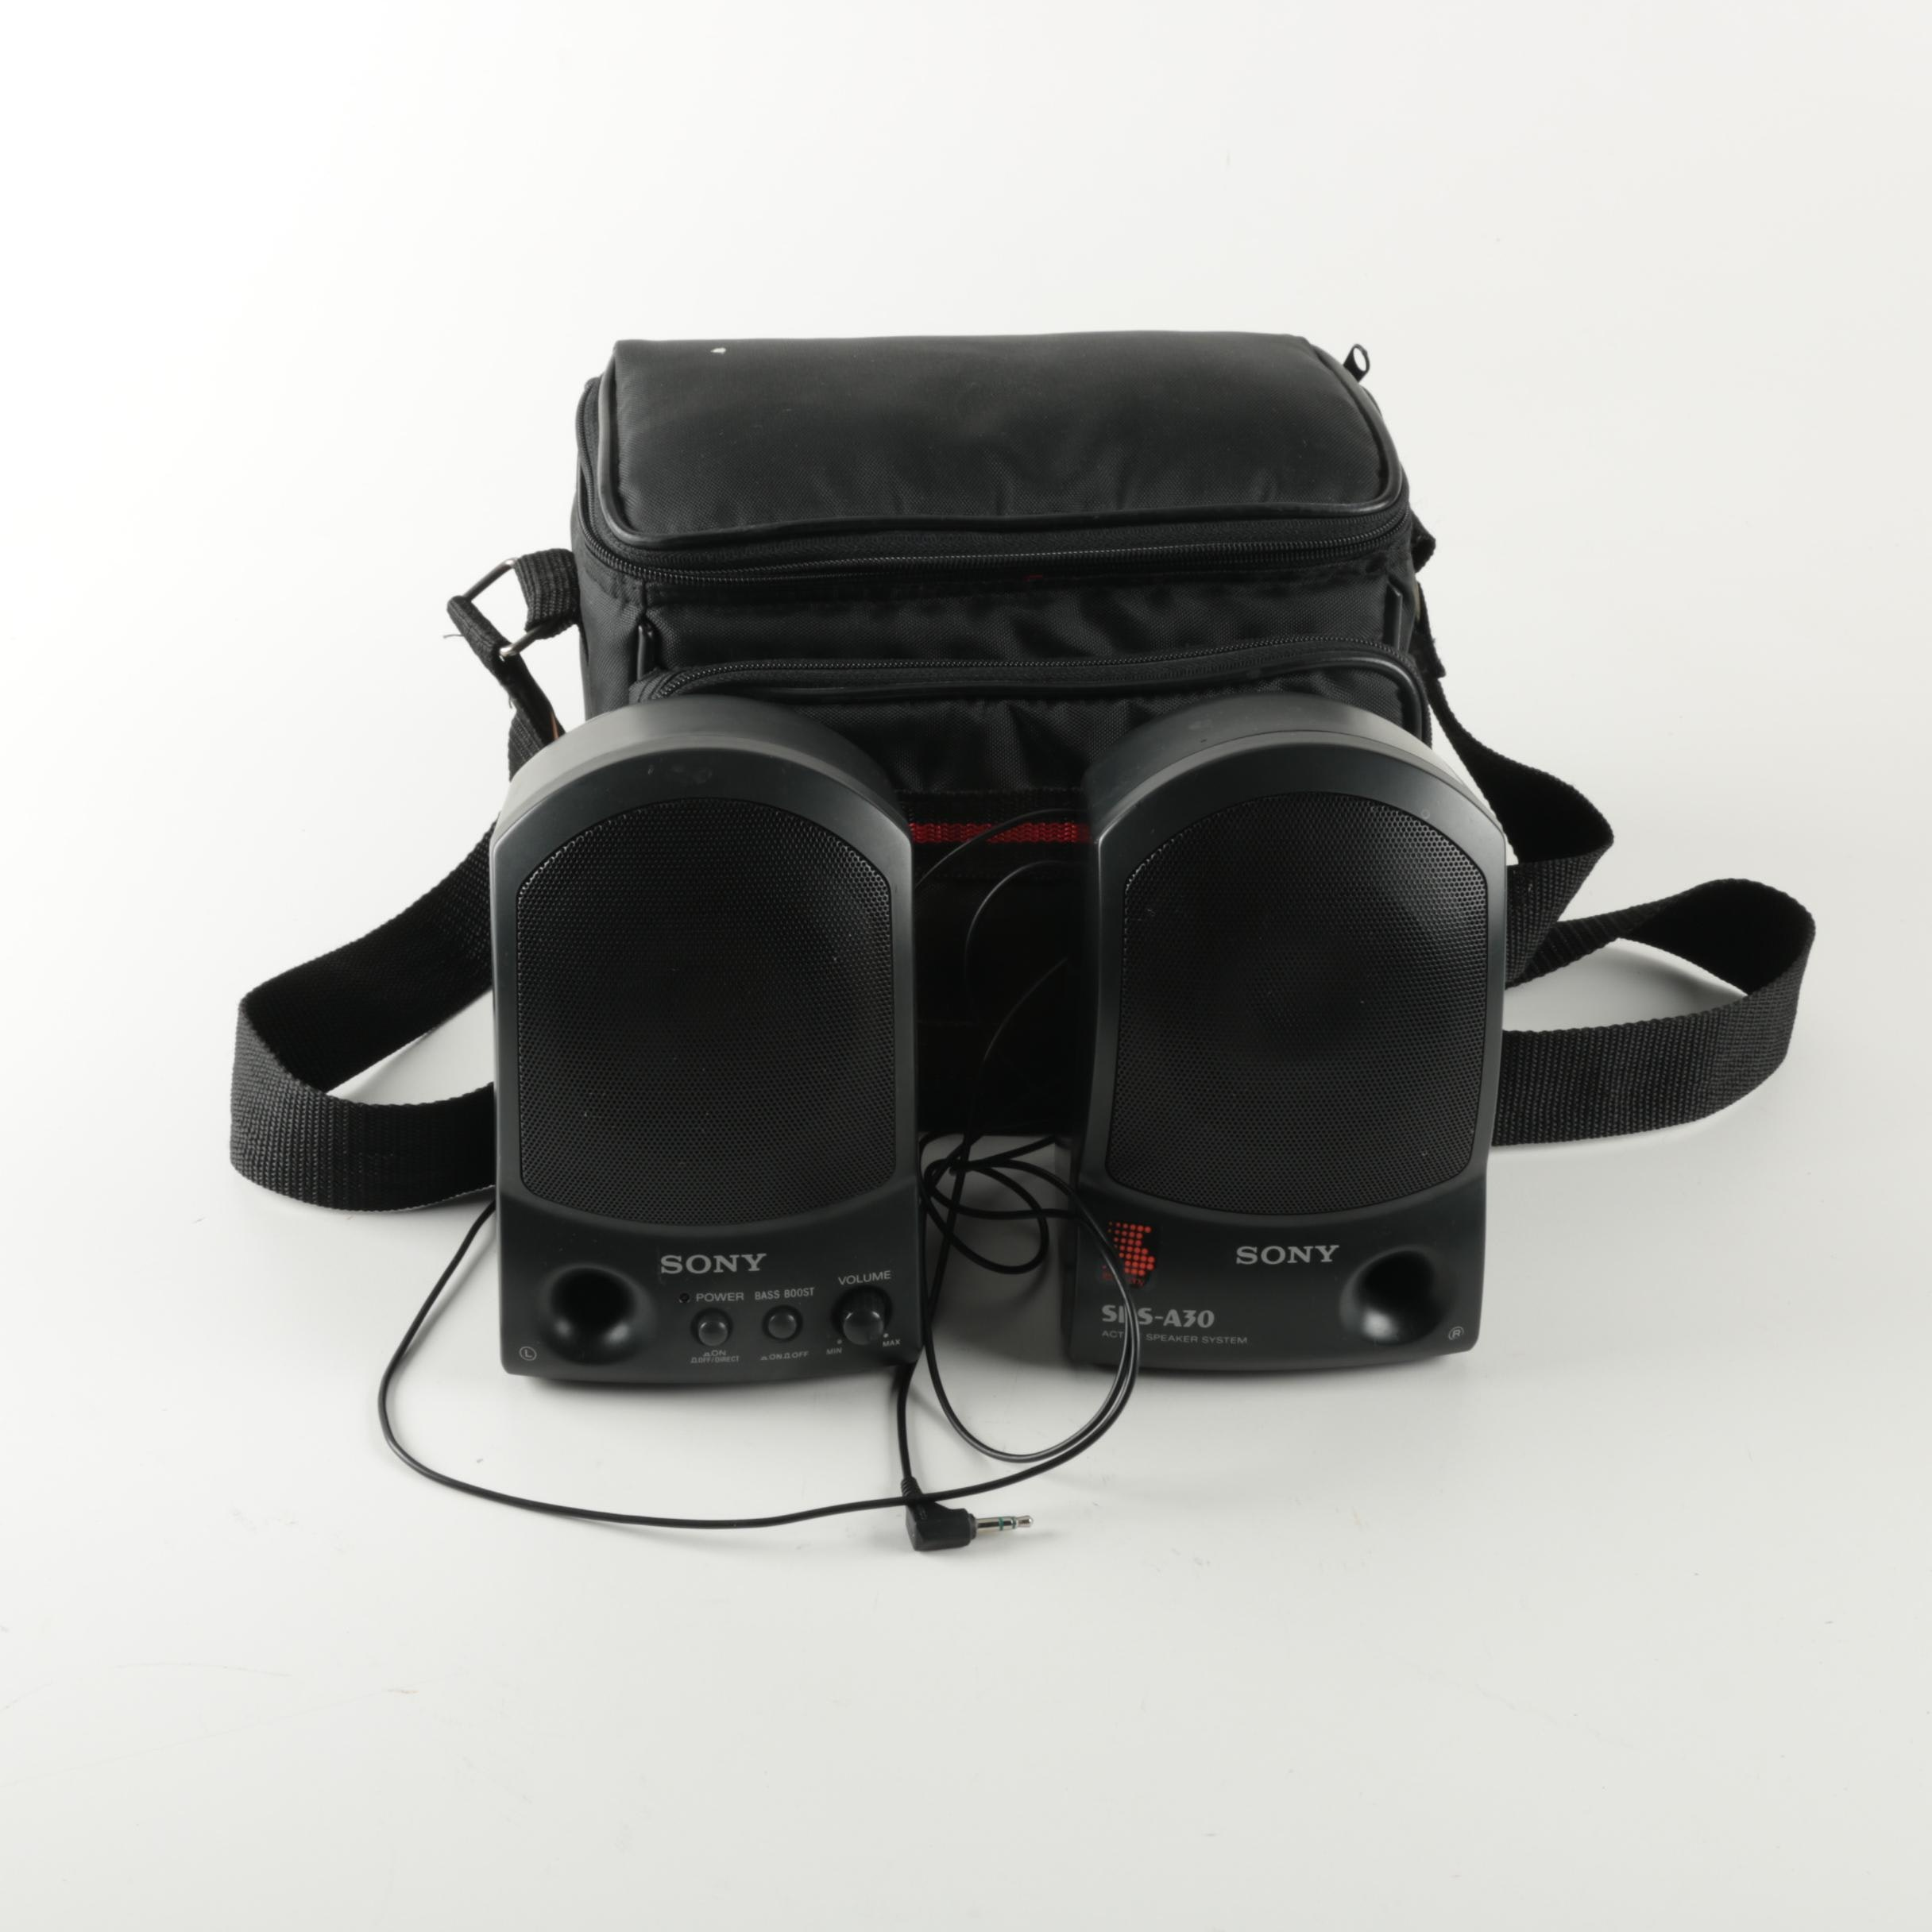 Sony SRS-A30 Active Speaker System